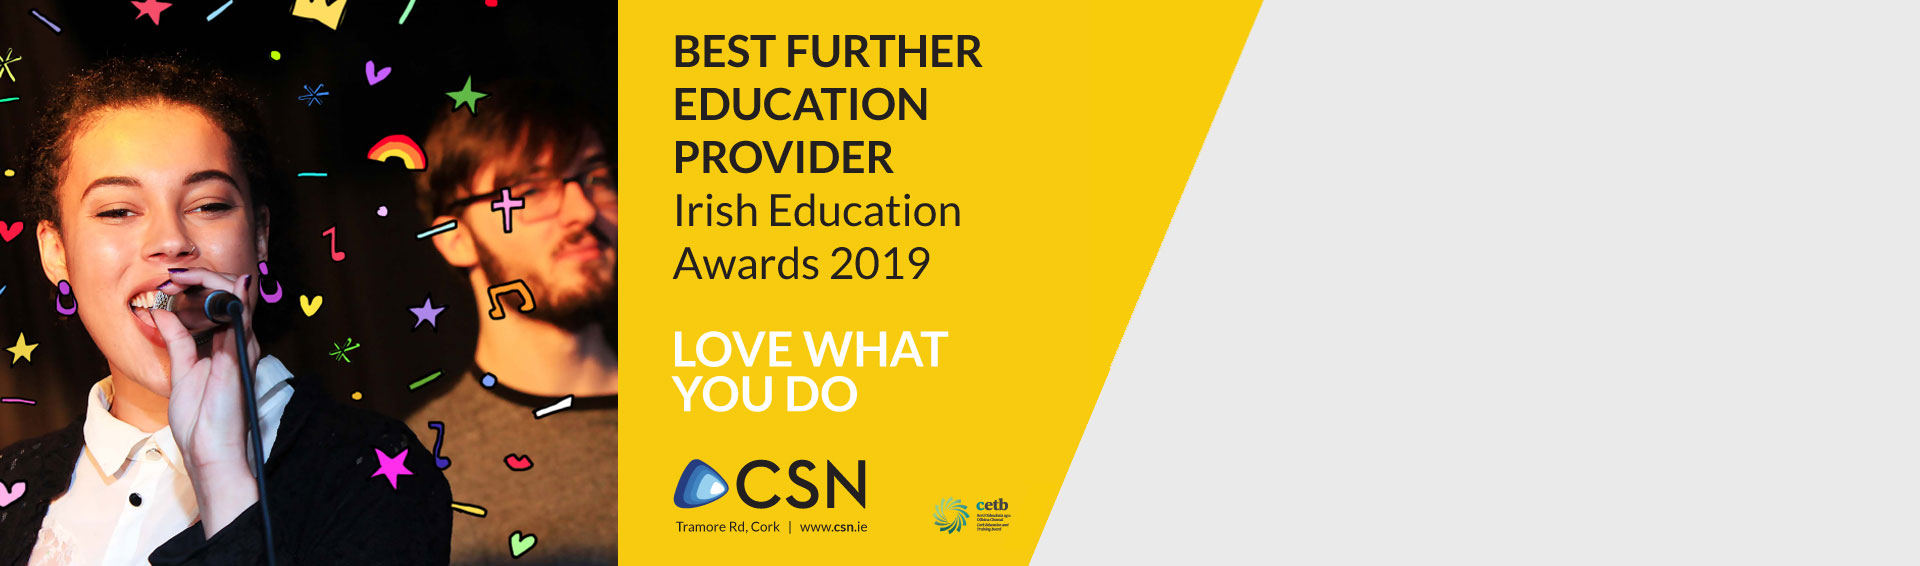 CSN Wins!  'Best Further Education Provider'  at the 2019 Education Awards